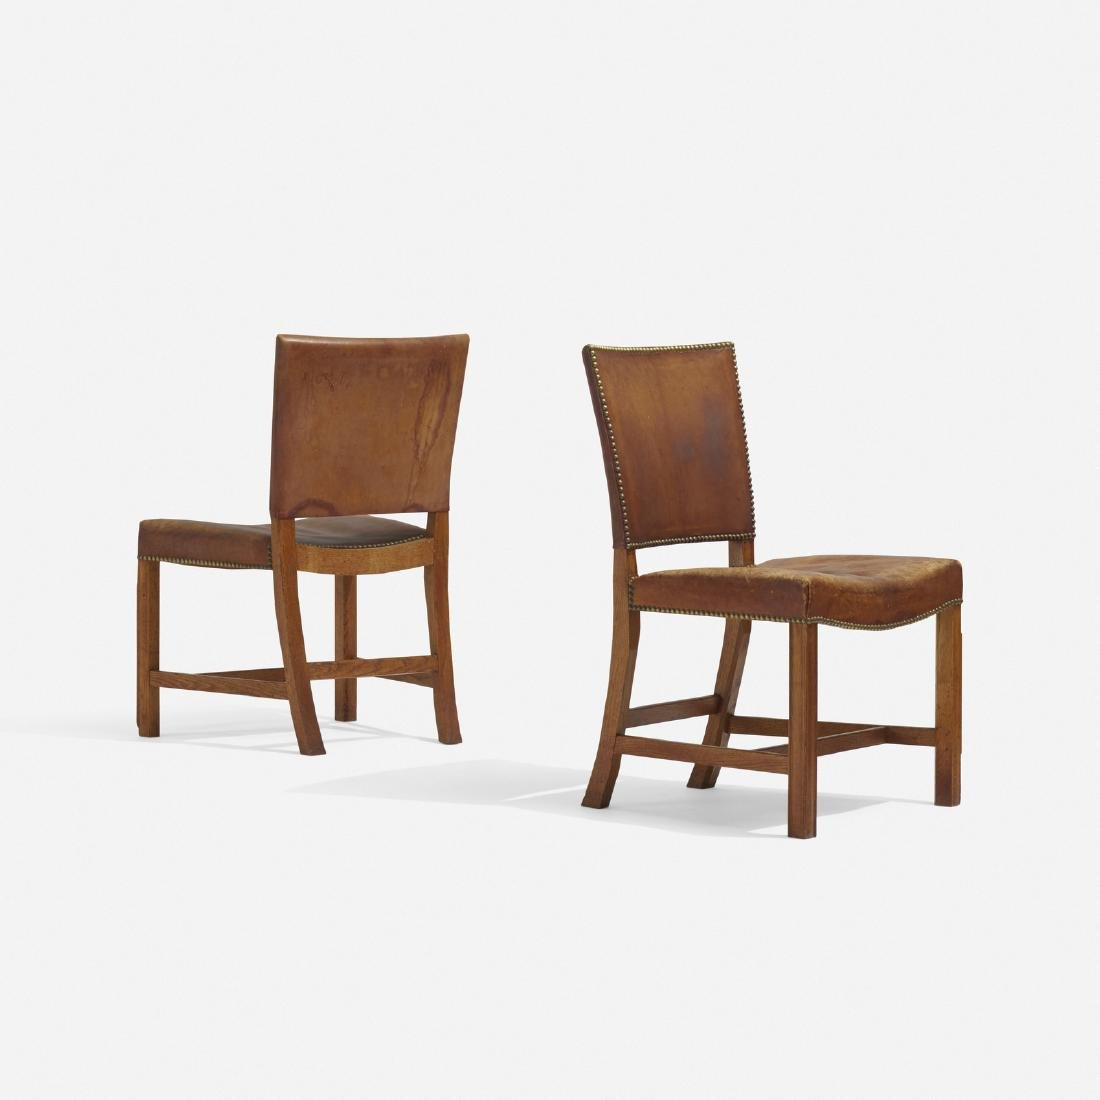 Kaare Klint, Barcelona chairs model 3758, pair